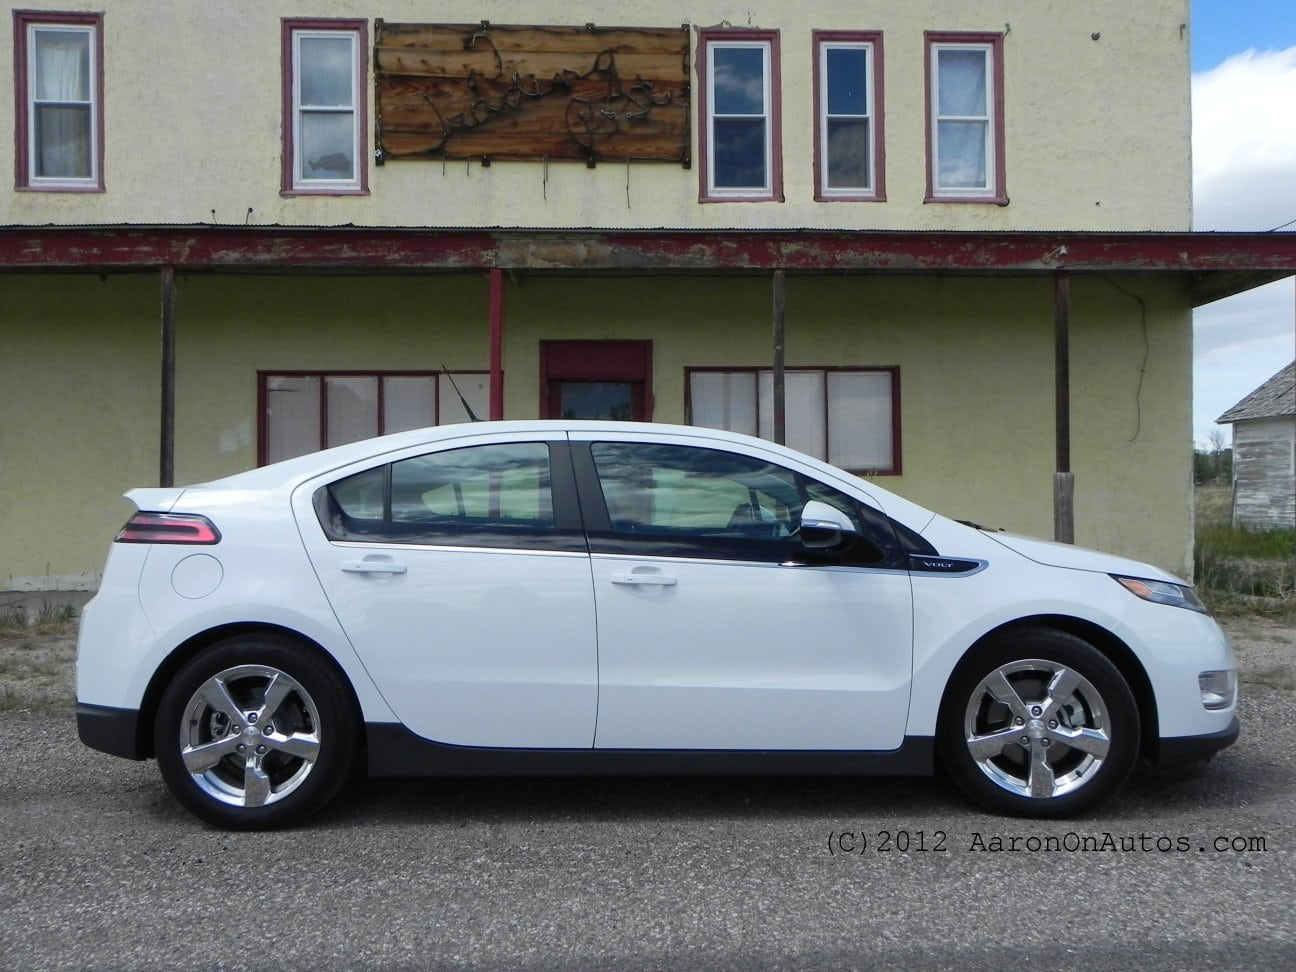 Top 5 Misconceptions About The Chevrolet Volt Chevy Gas